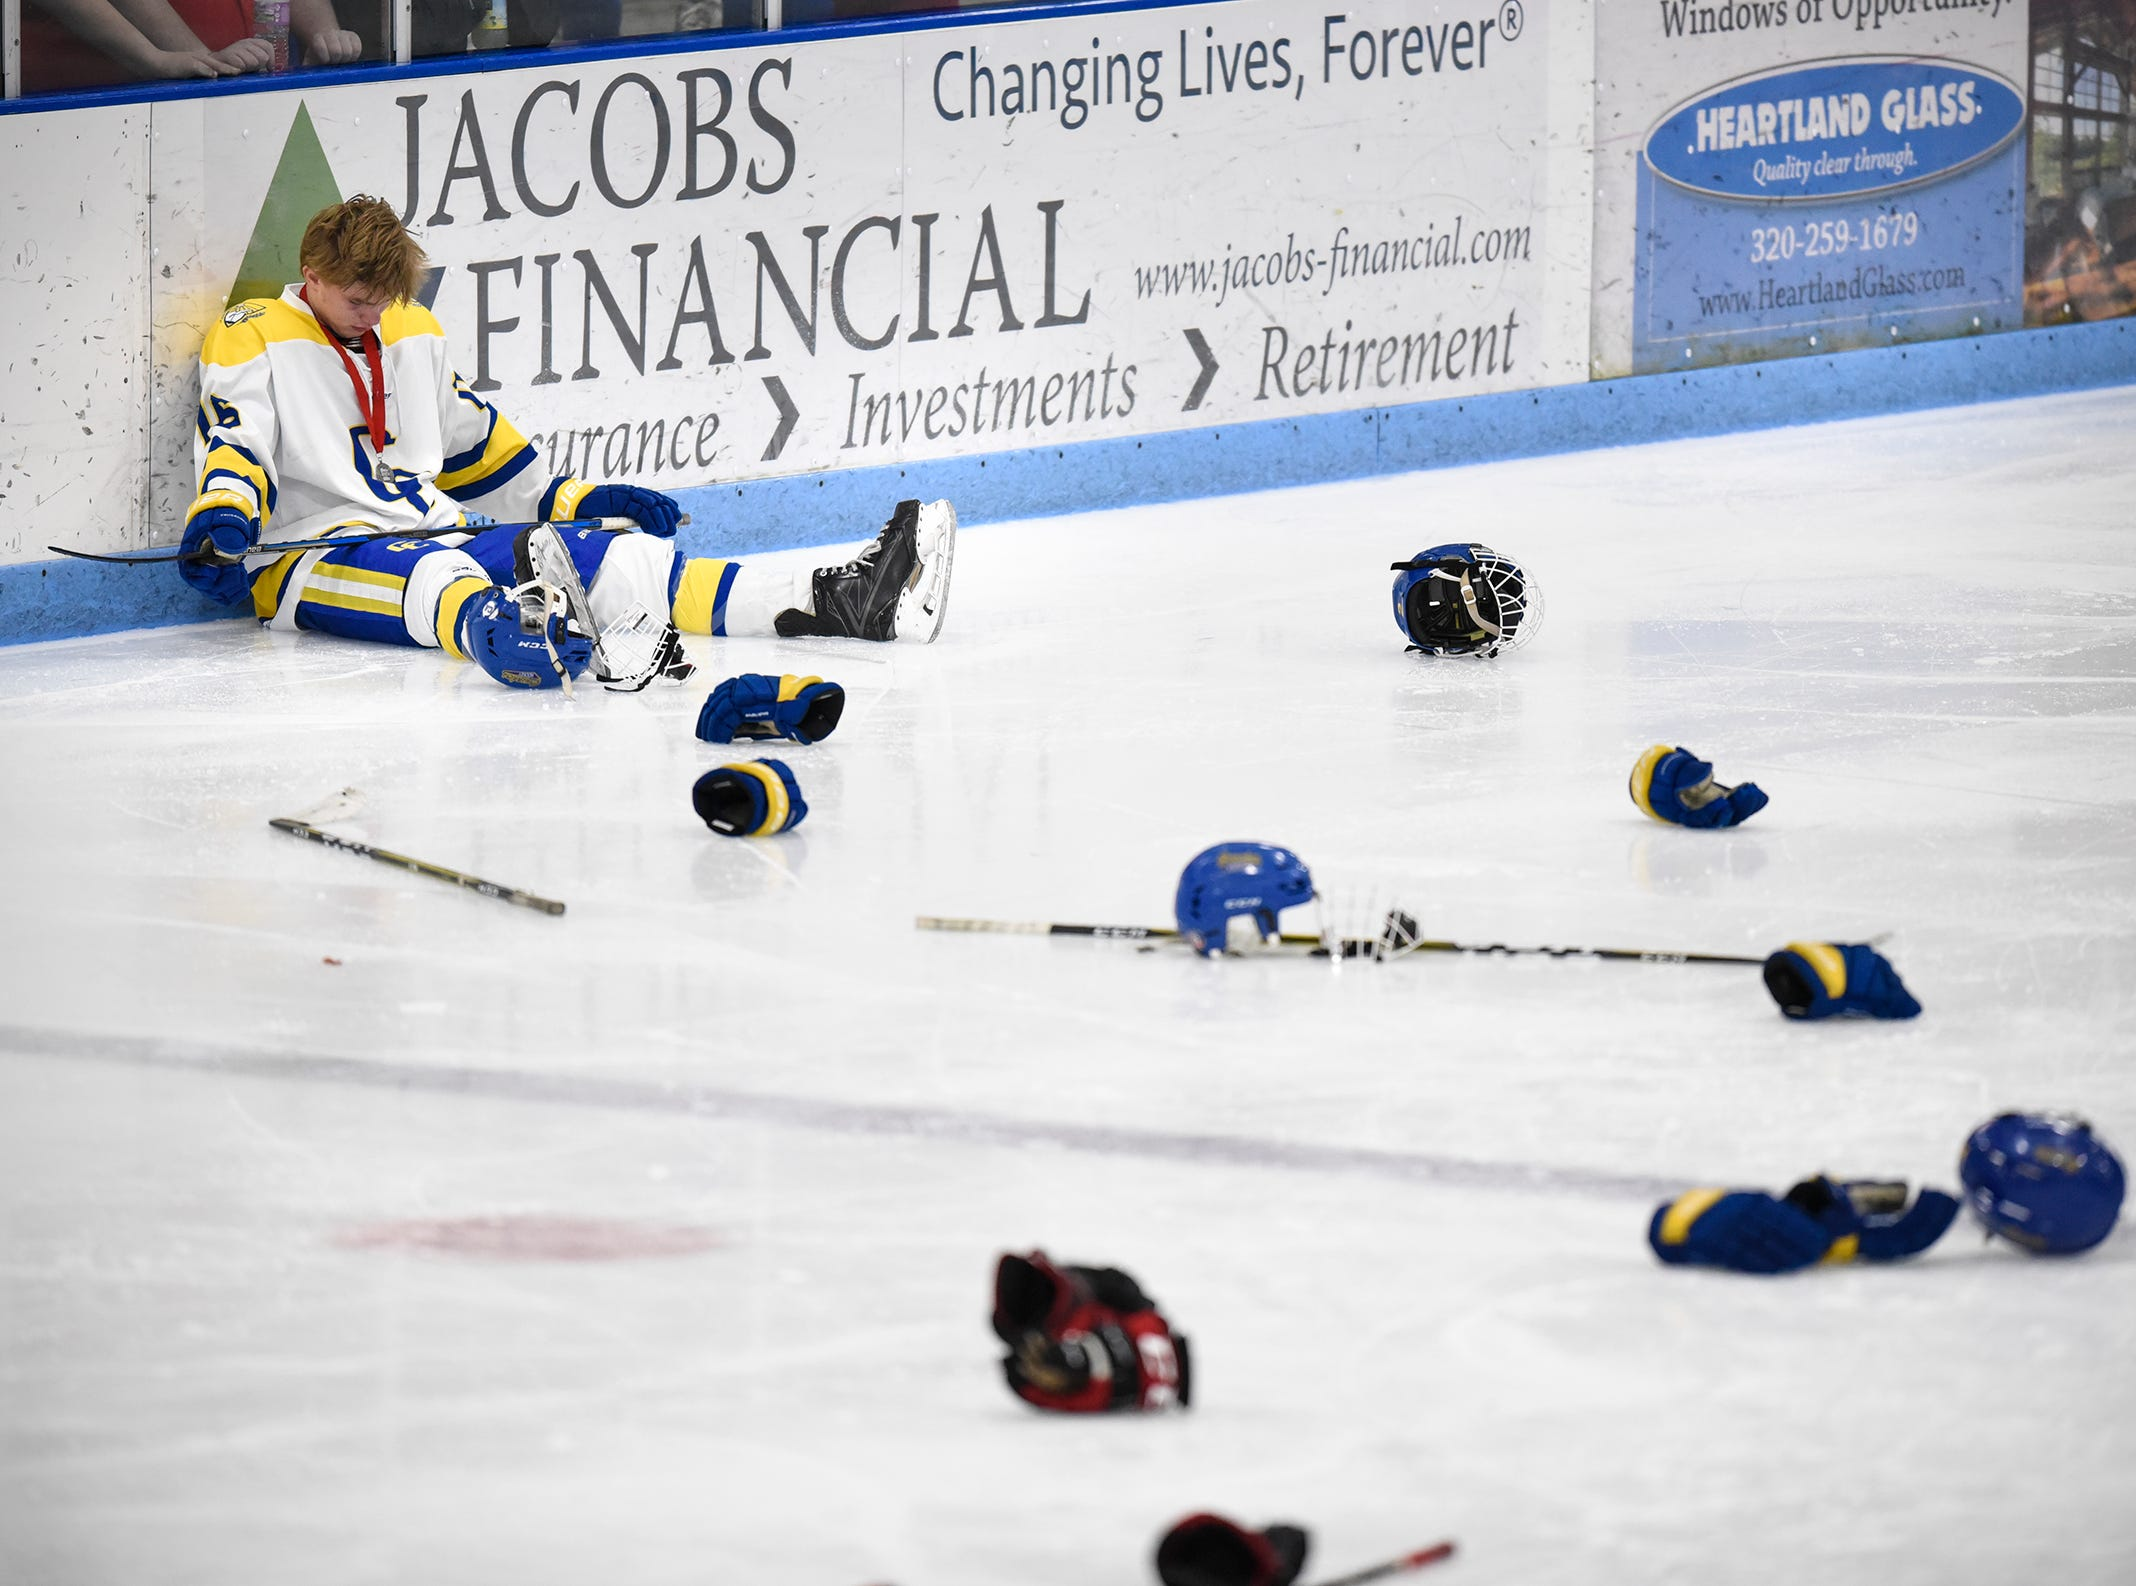 Cathedral's Matthew Wedin sits by himself during the awards ceremony following the Section 6A hockey finals at the MAC in St. Cloud. Cathedral lost 3-2 to Alexandria in two overtimes.